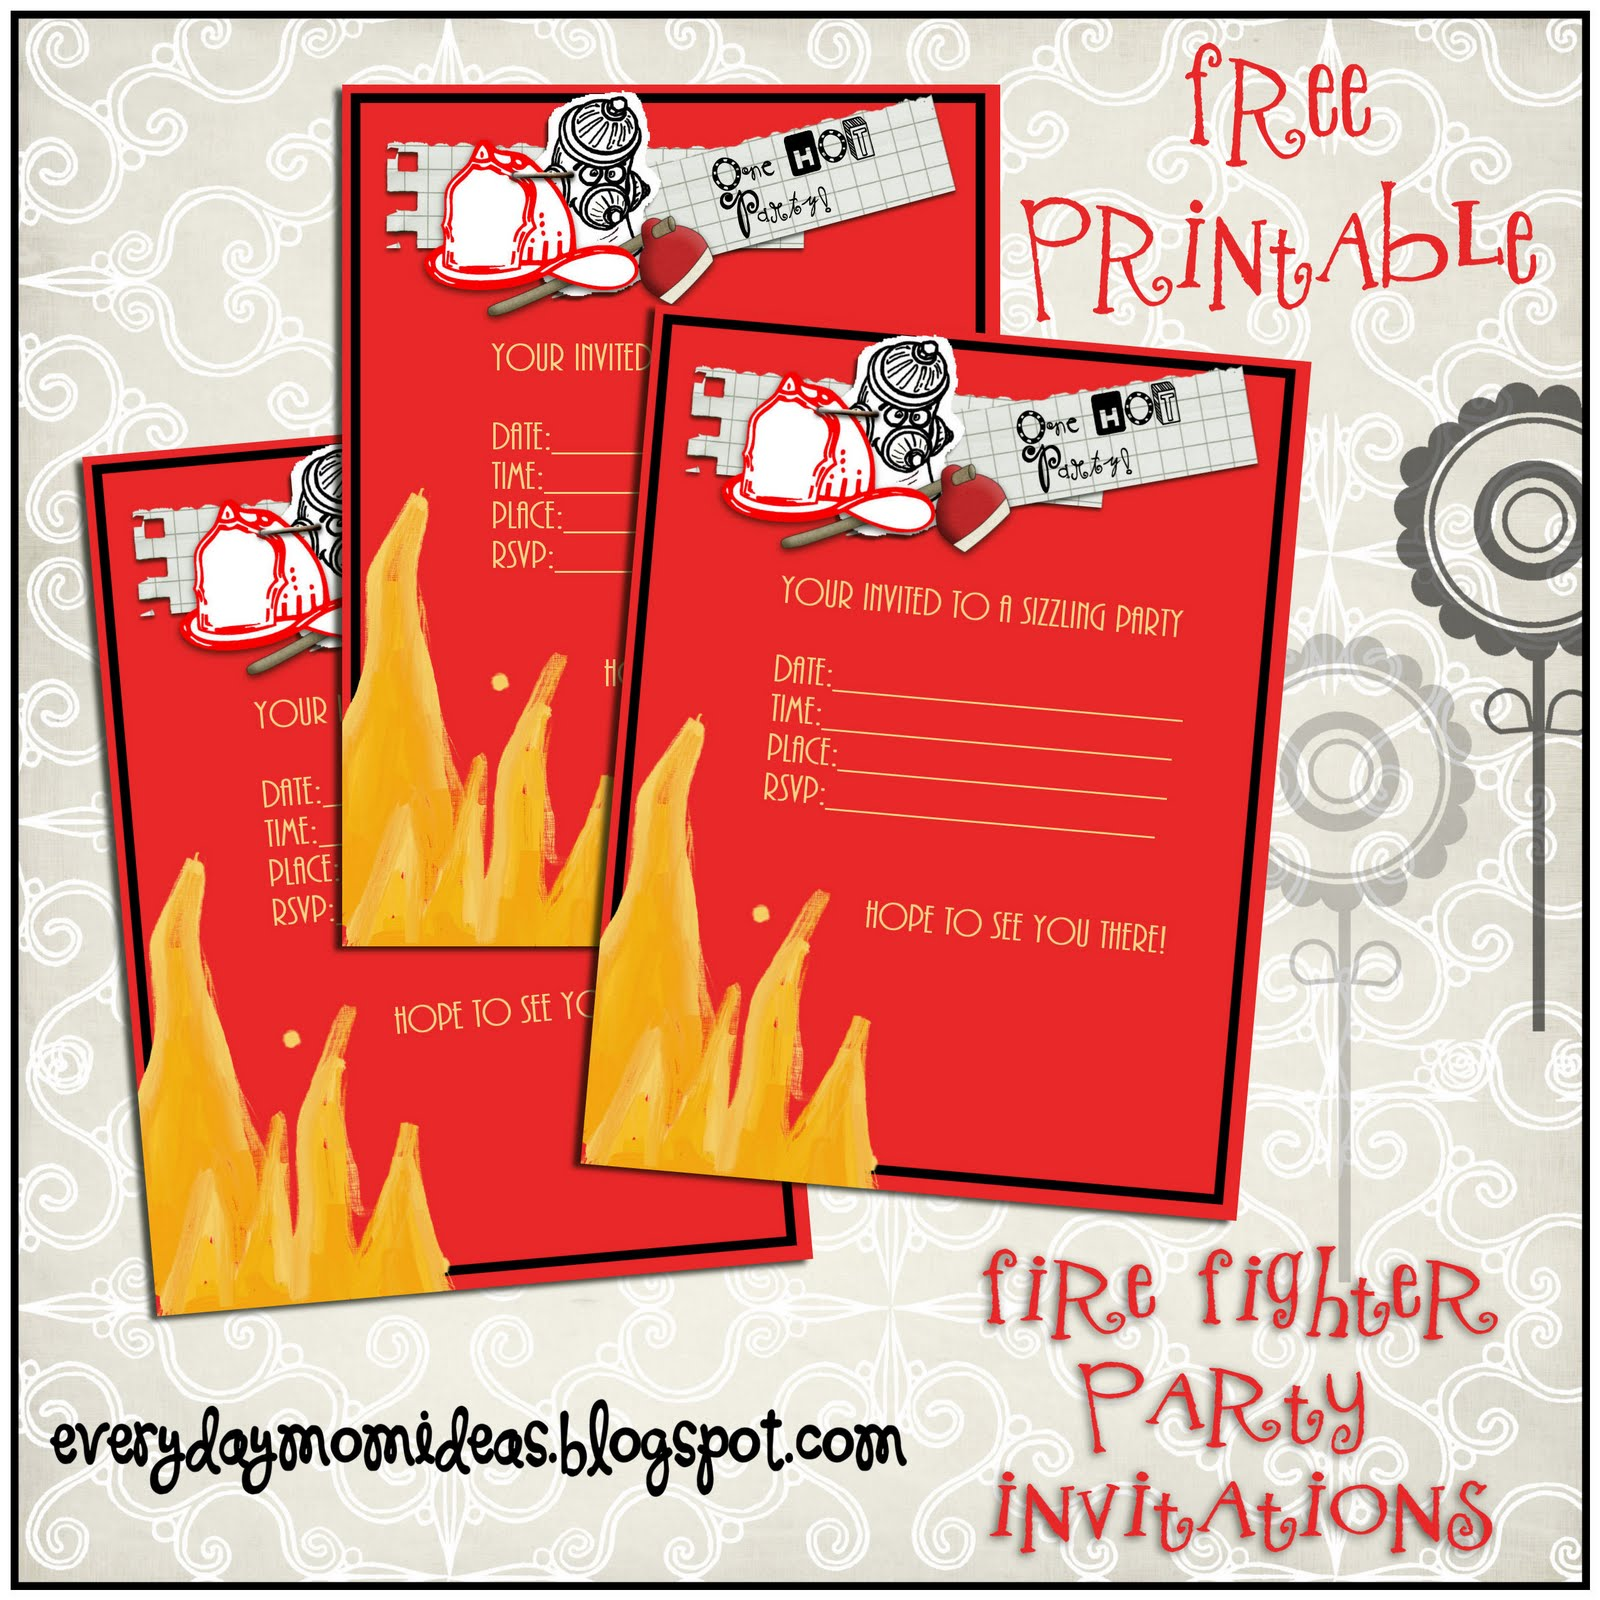 firefighter party ideas,party city,firefighter party food ideas,decorate firefighter party,firefighter party invitations,firefighter party recipes,firefighter party supplies,firefighter party food,firefighter party games,